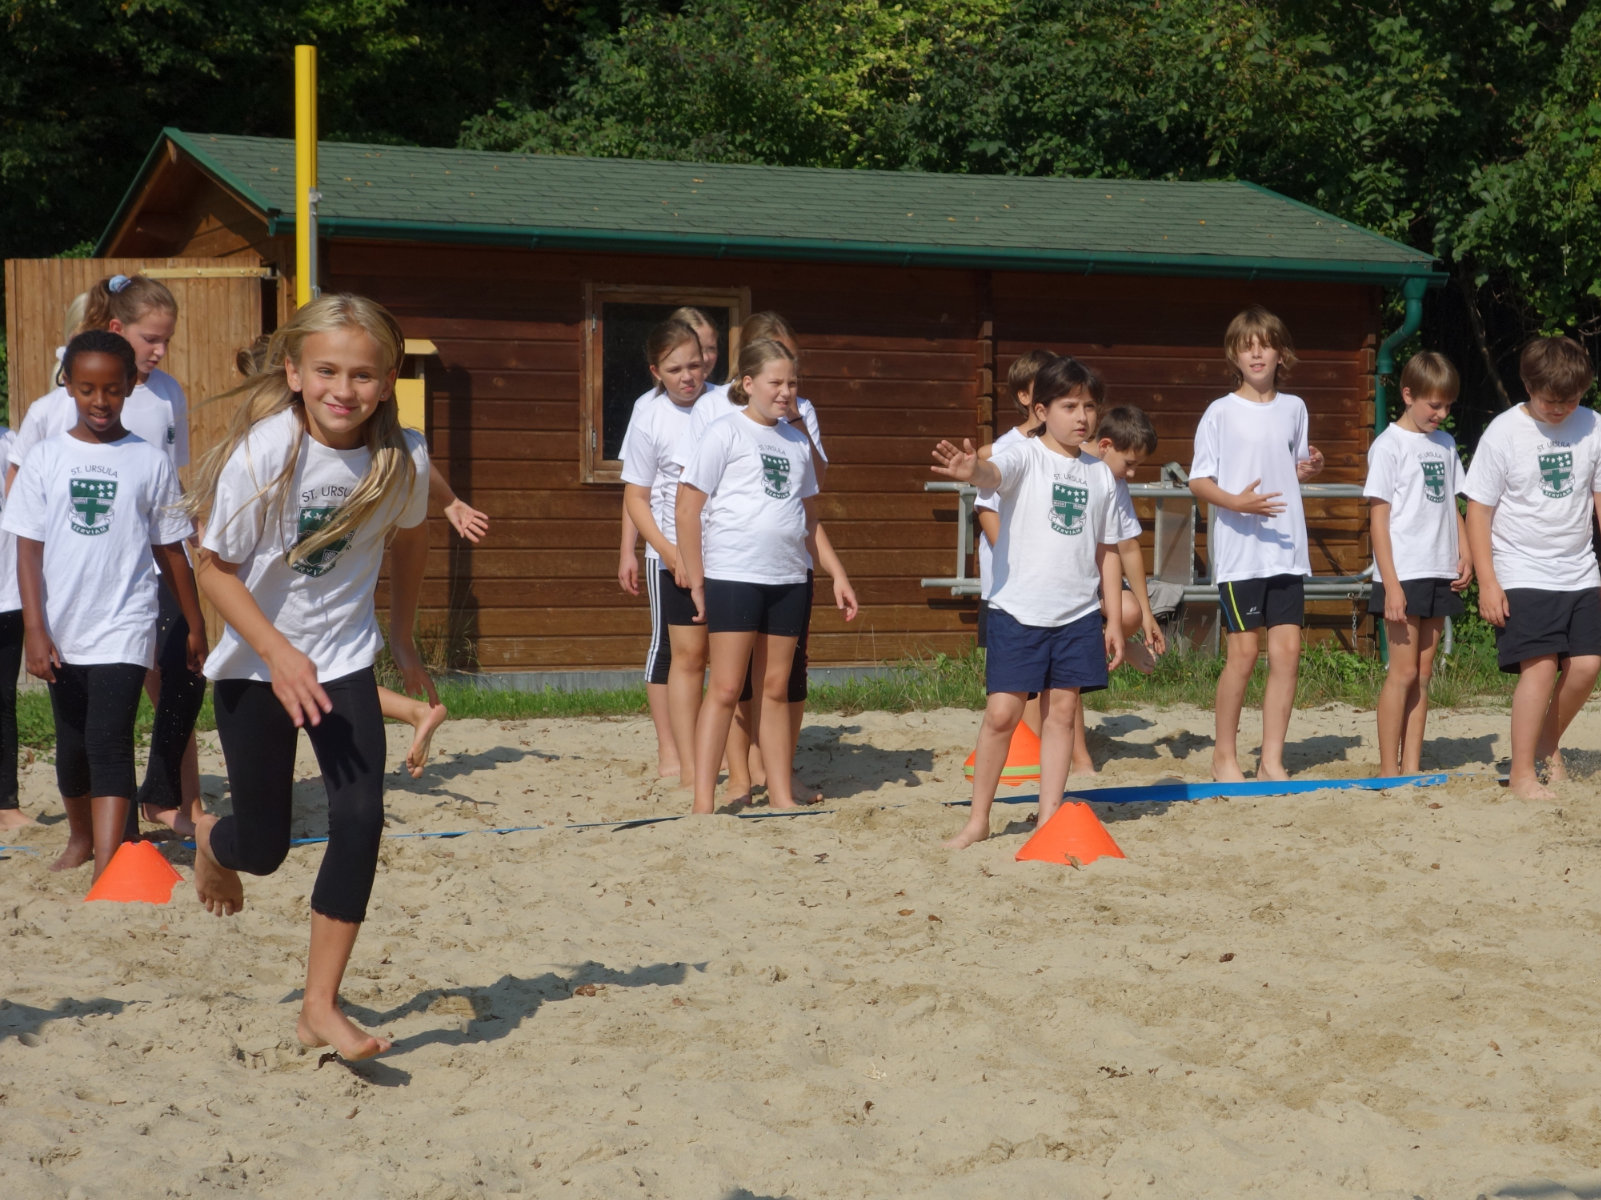 1600x1200 Beachvolleyballpl